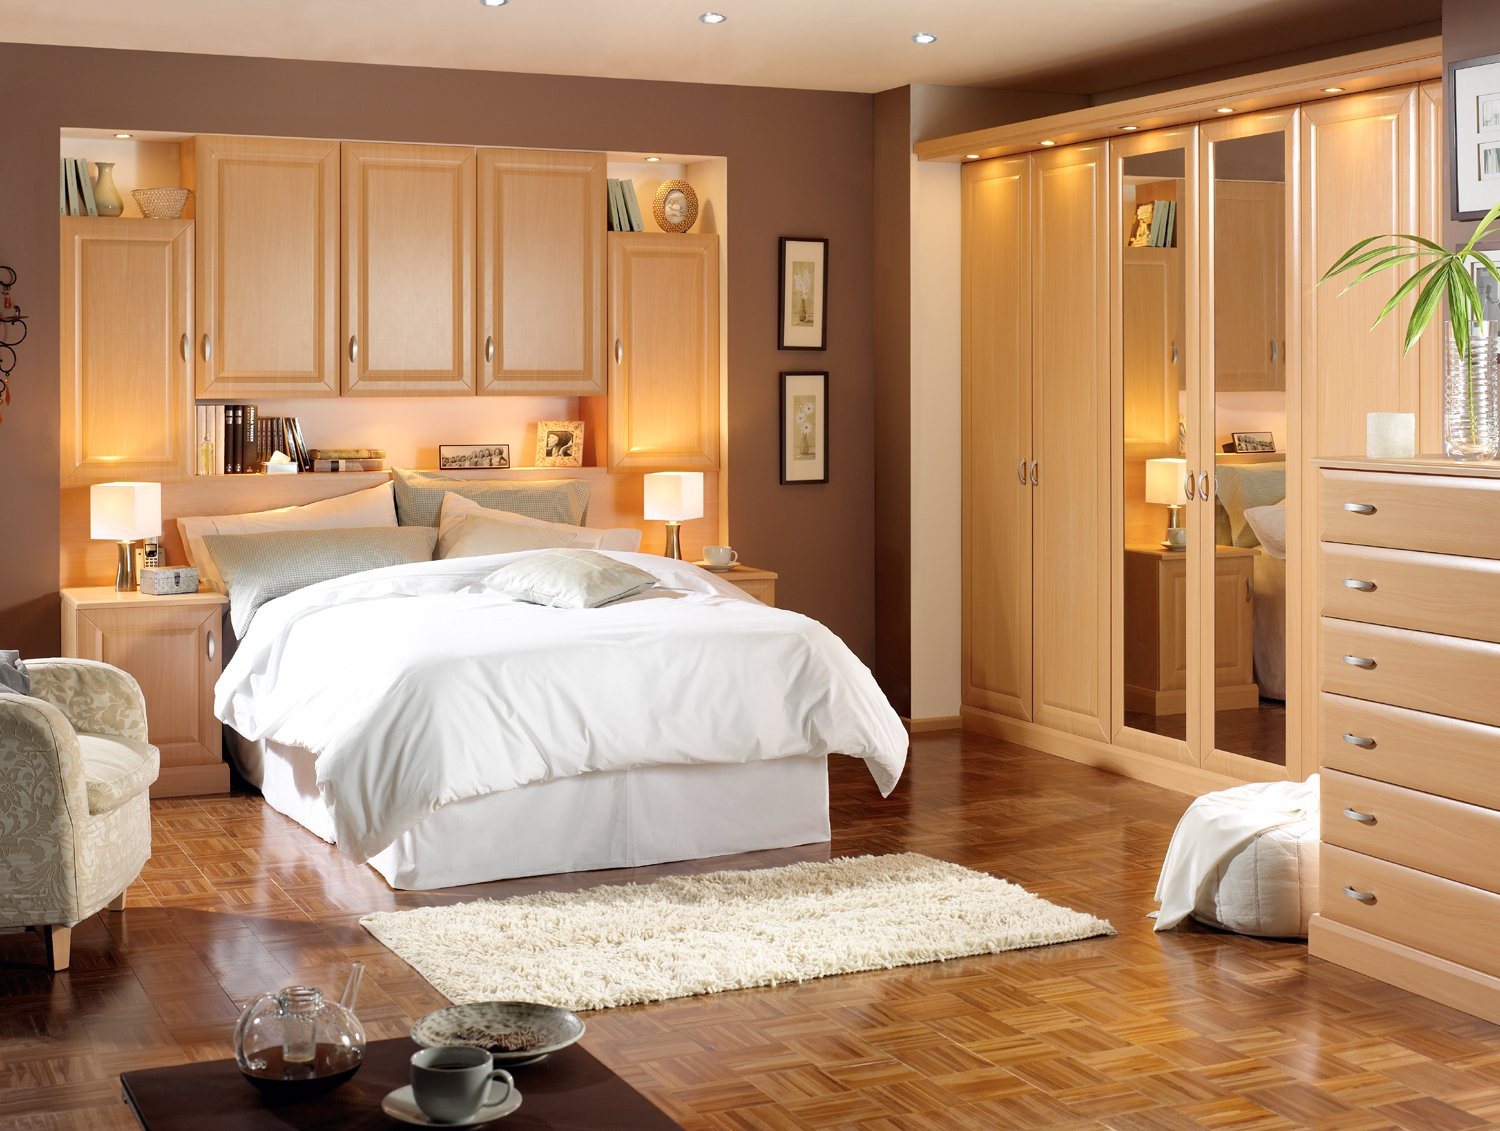 Decoration Nice Bedrooms Cupboard Designs Pictures An Interior Design